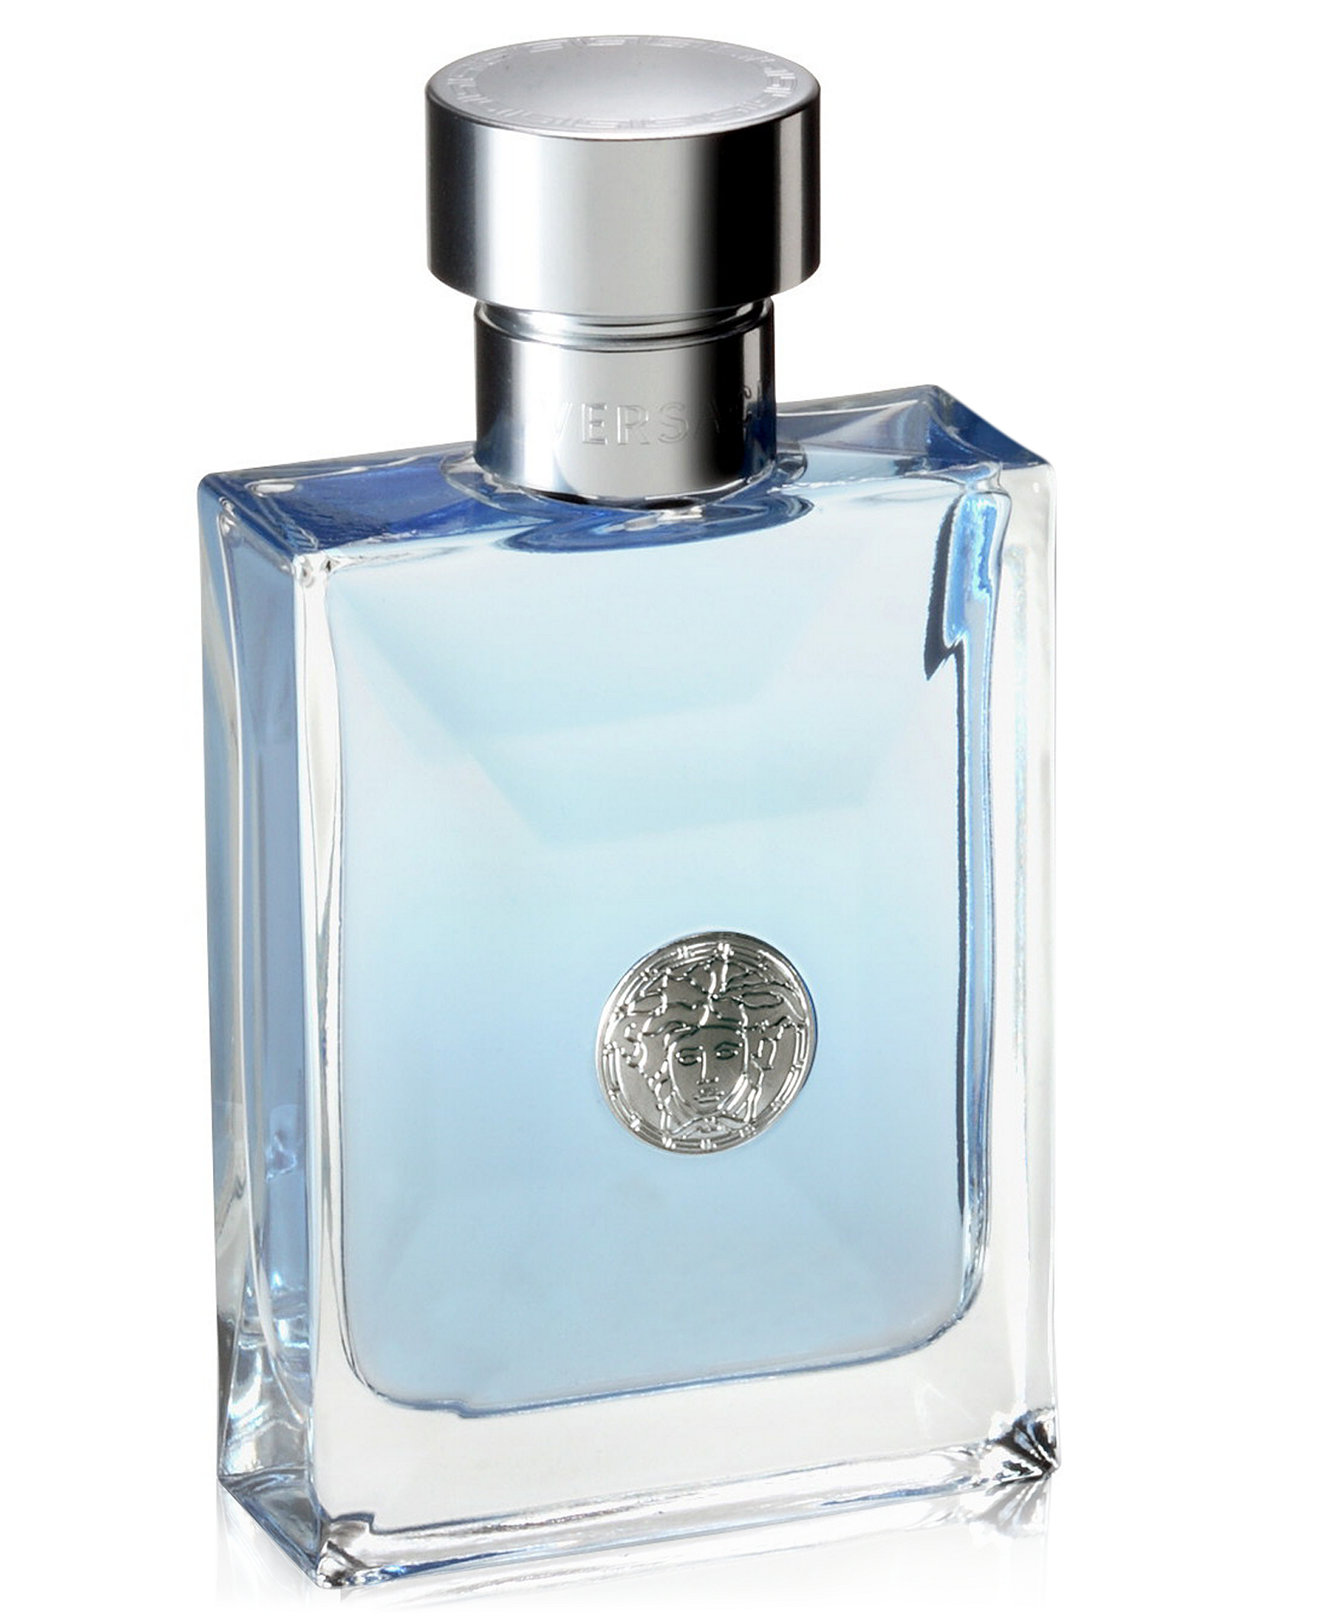 Versace Pour Homme Fragrance Collection For Men  Shop All Brands  Beauty   Macy's